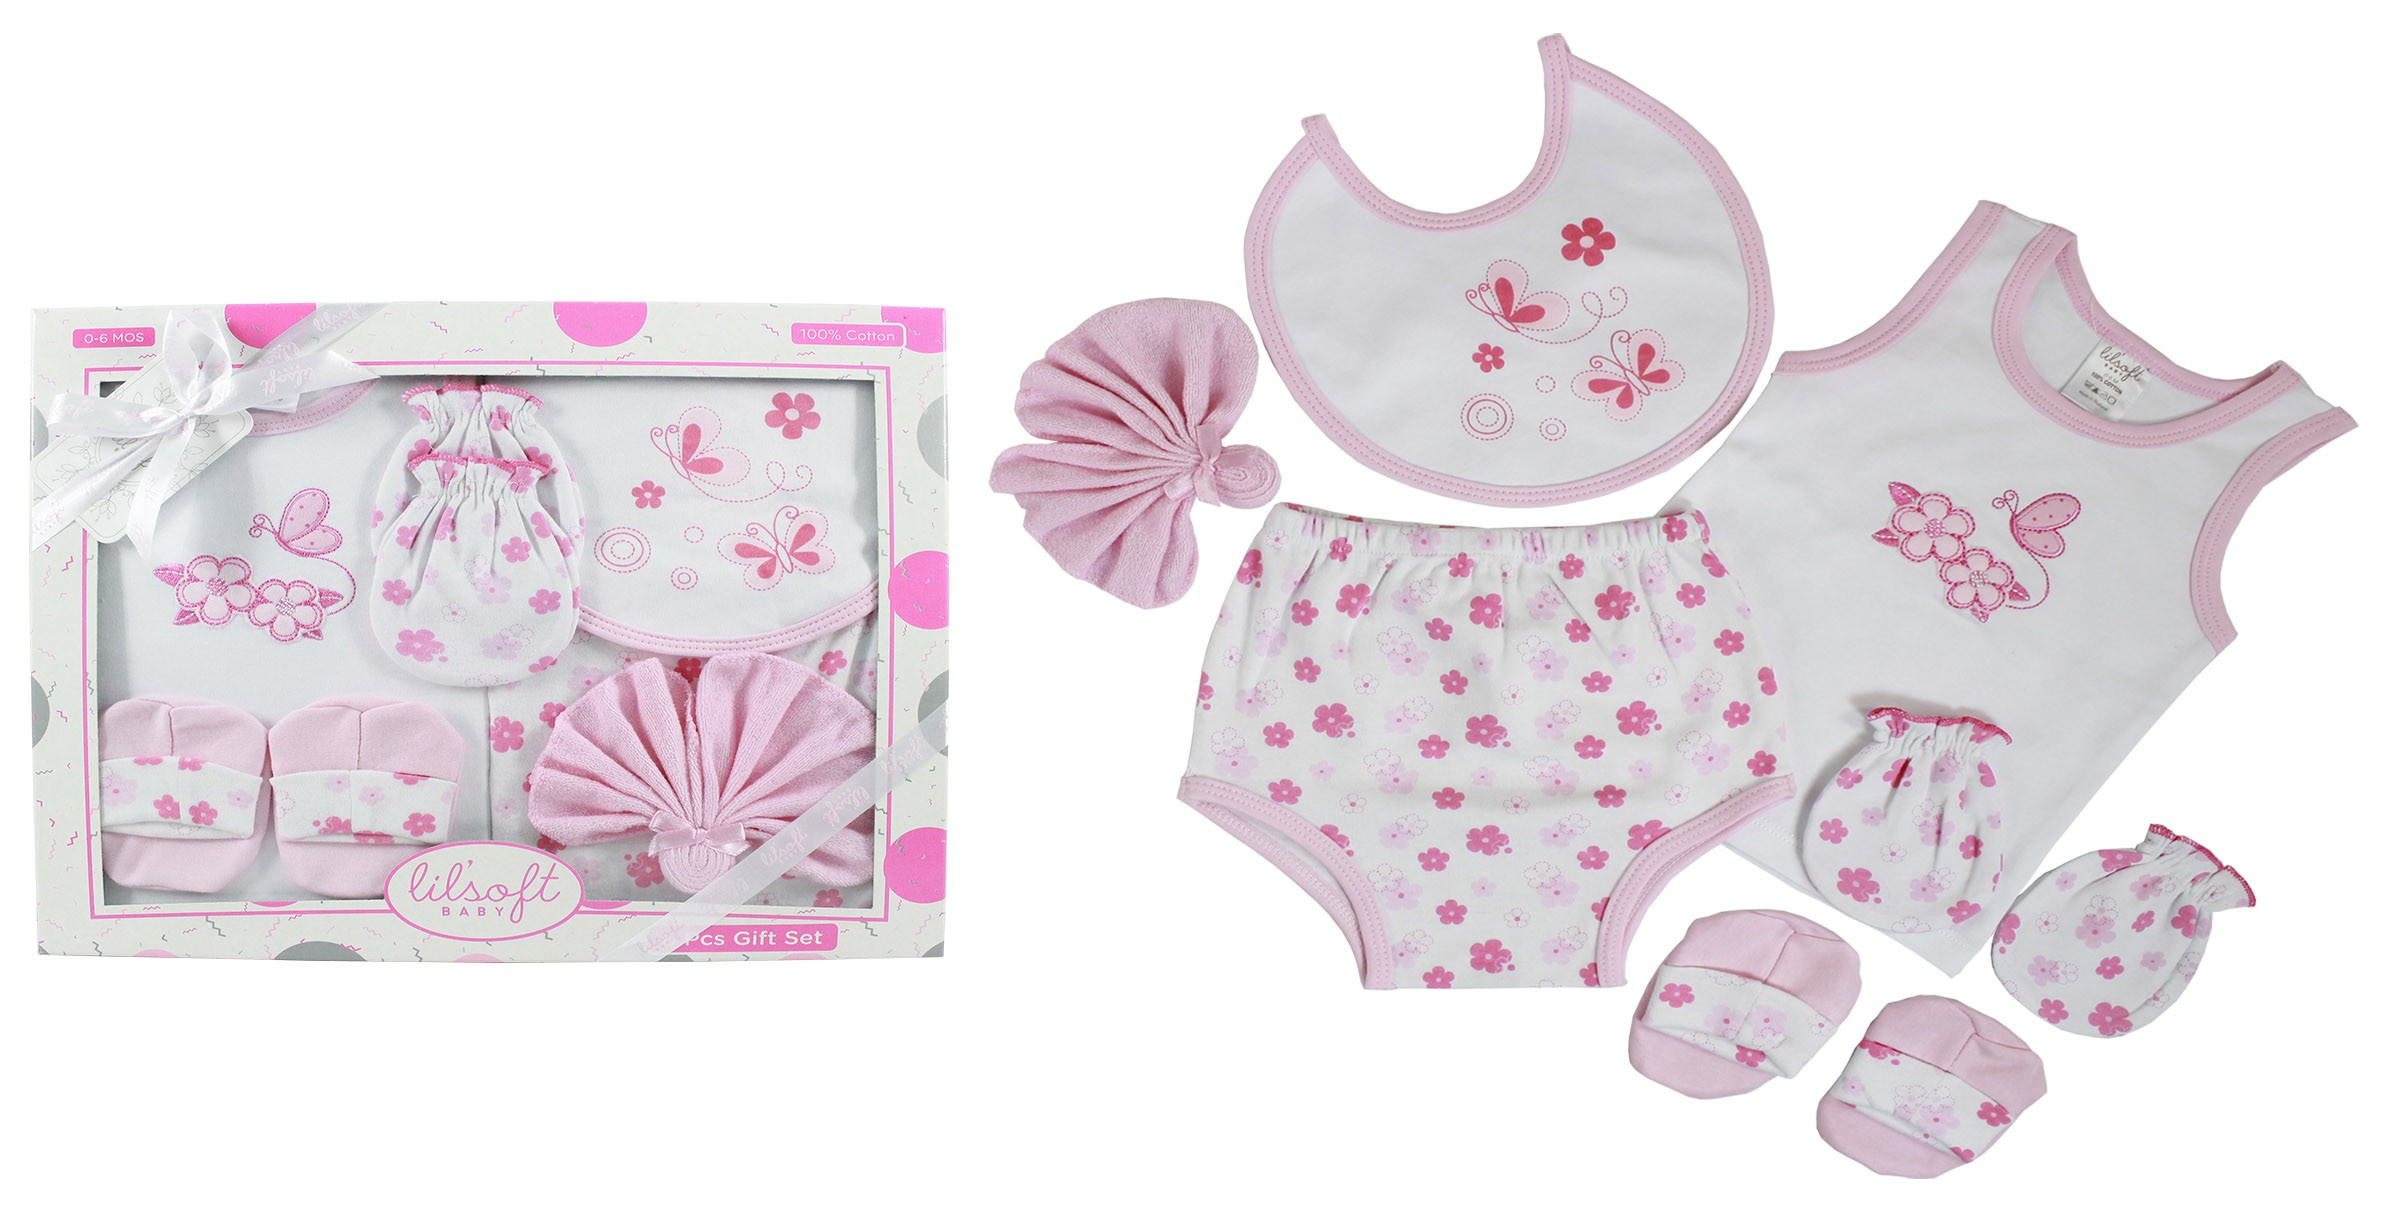 Baby Gift Kit : Pcs baby gift set lilsoft